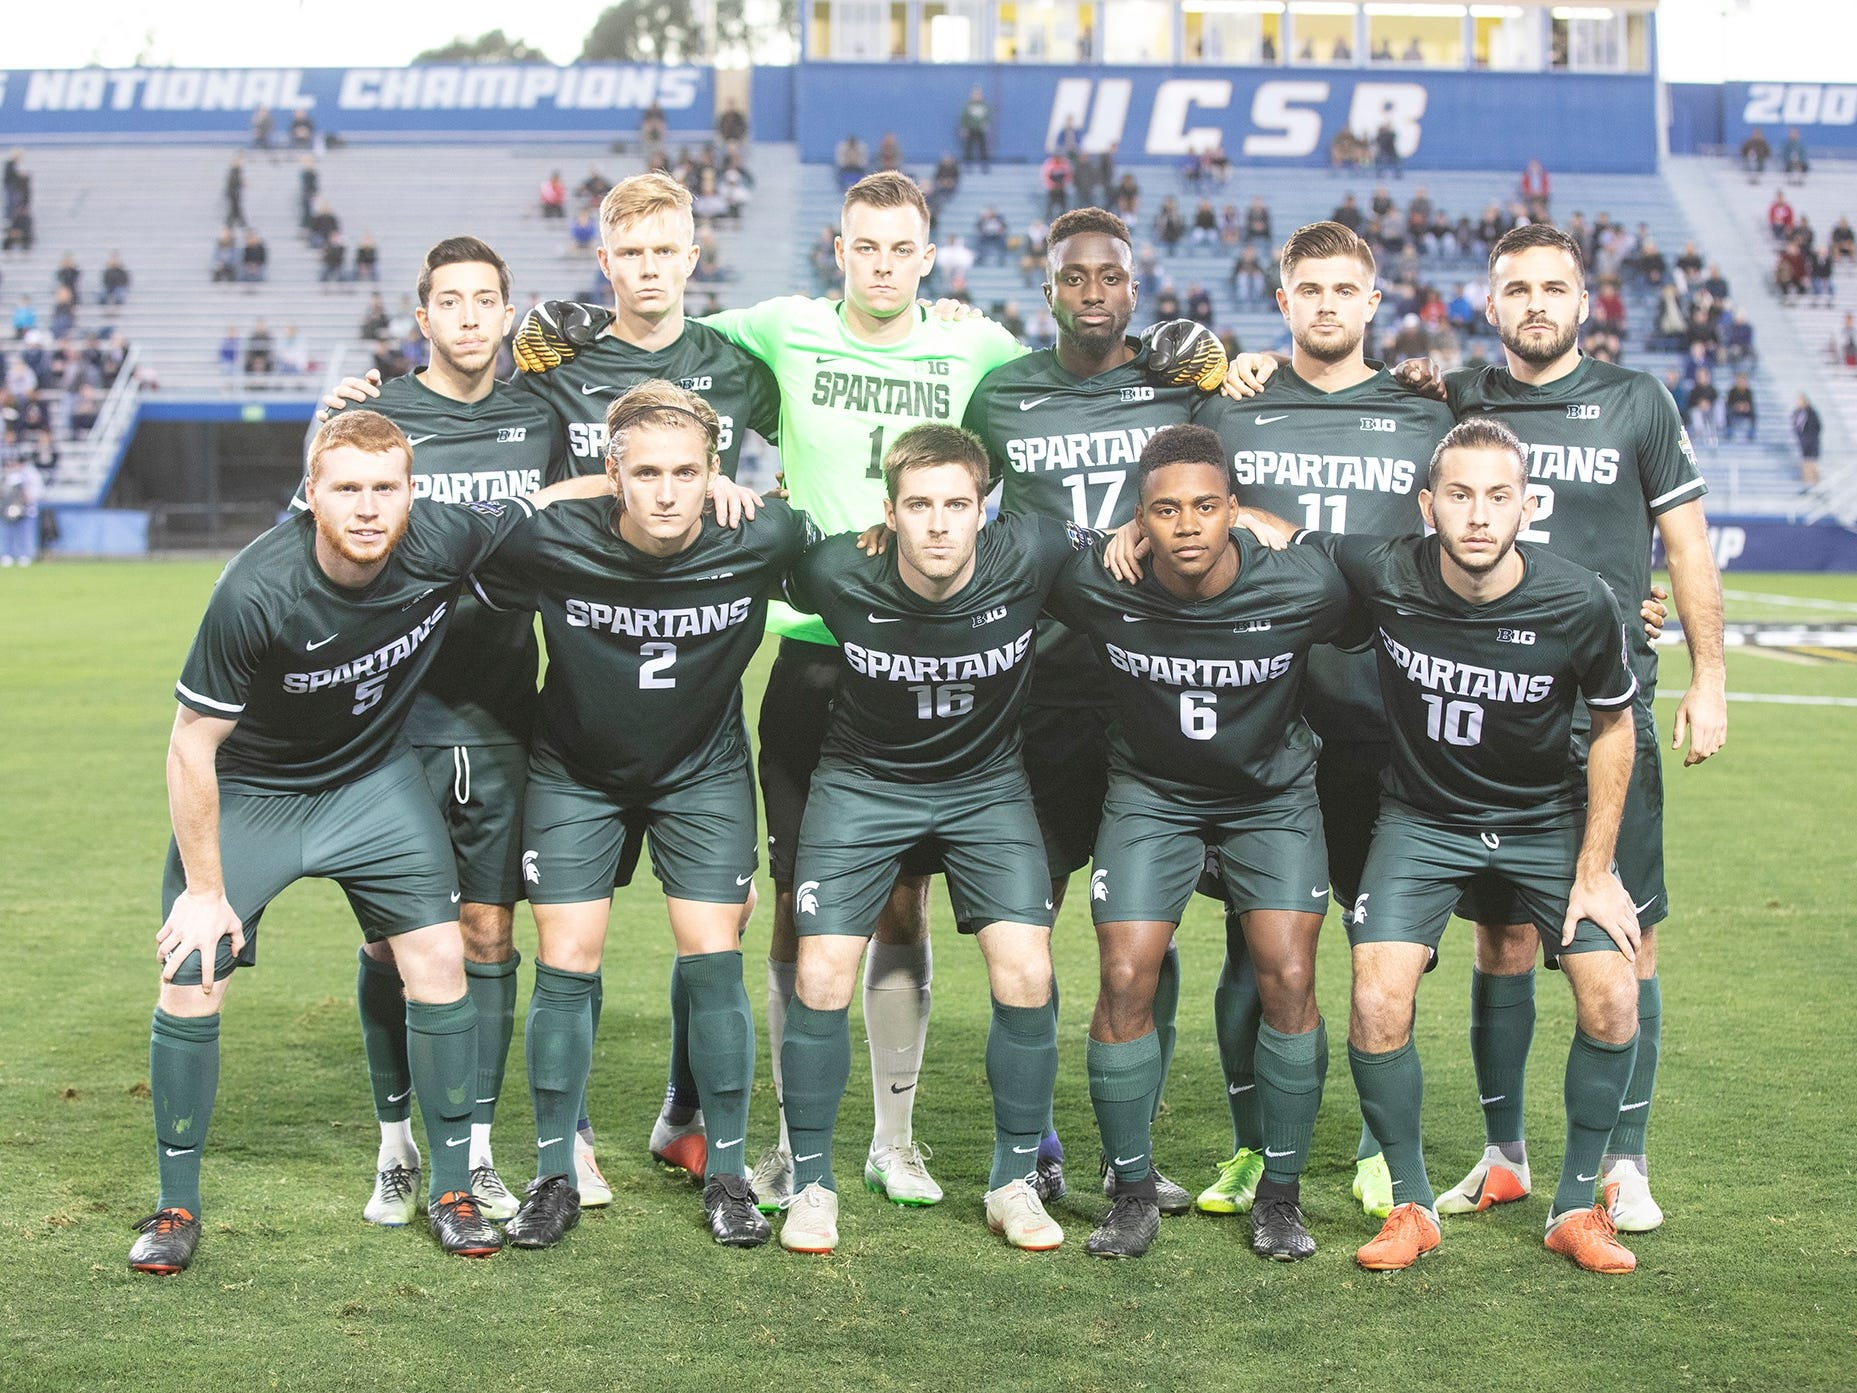 The starting 11 for Michigan State men's soccer in its College Cup national semifinal match vs. Akron on Dec. 7, 2018. Front row (l-r): Michael Pimlott, Jack Beck, Connor Corrigan, DeJuan Jones, Giuseppe Barone. Back row: Hunter Barone, Patrick Nielsen, Jimmy Hague, Michael Wetungu, Ryan Sierakowski and John Freitag.